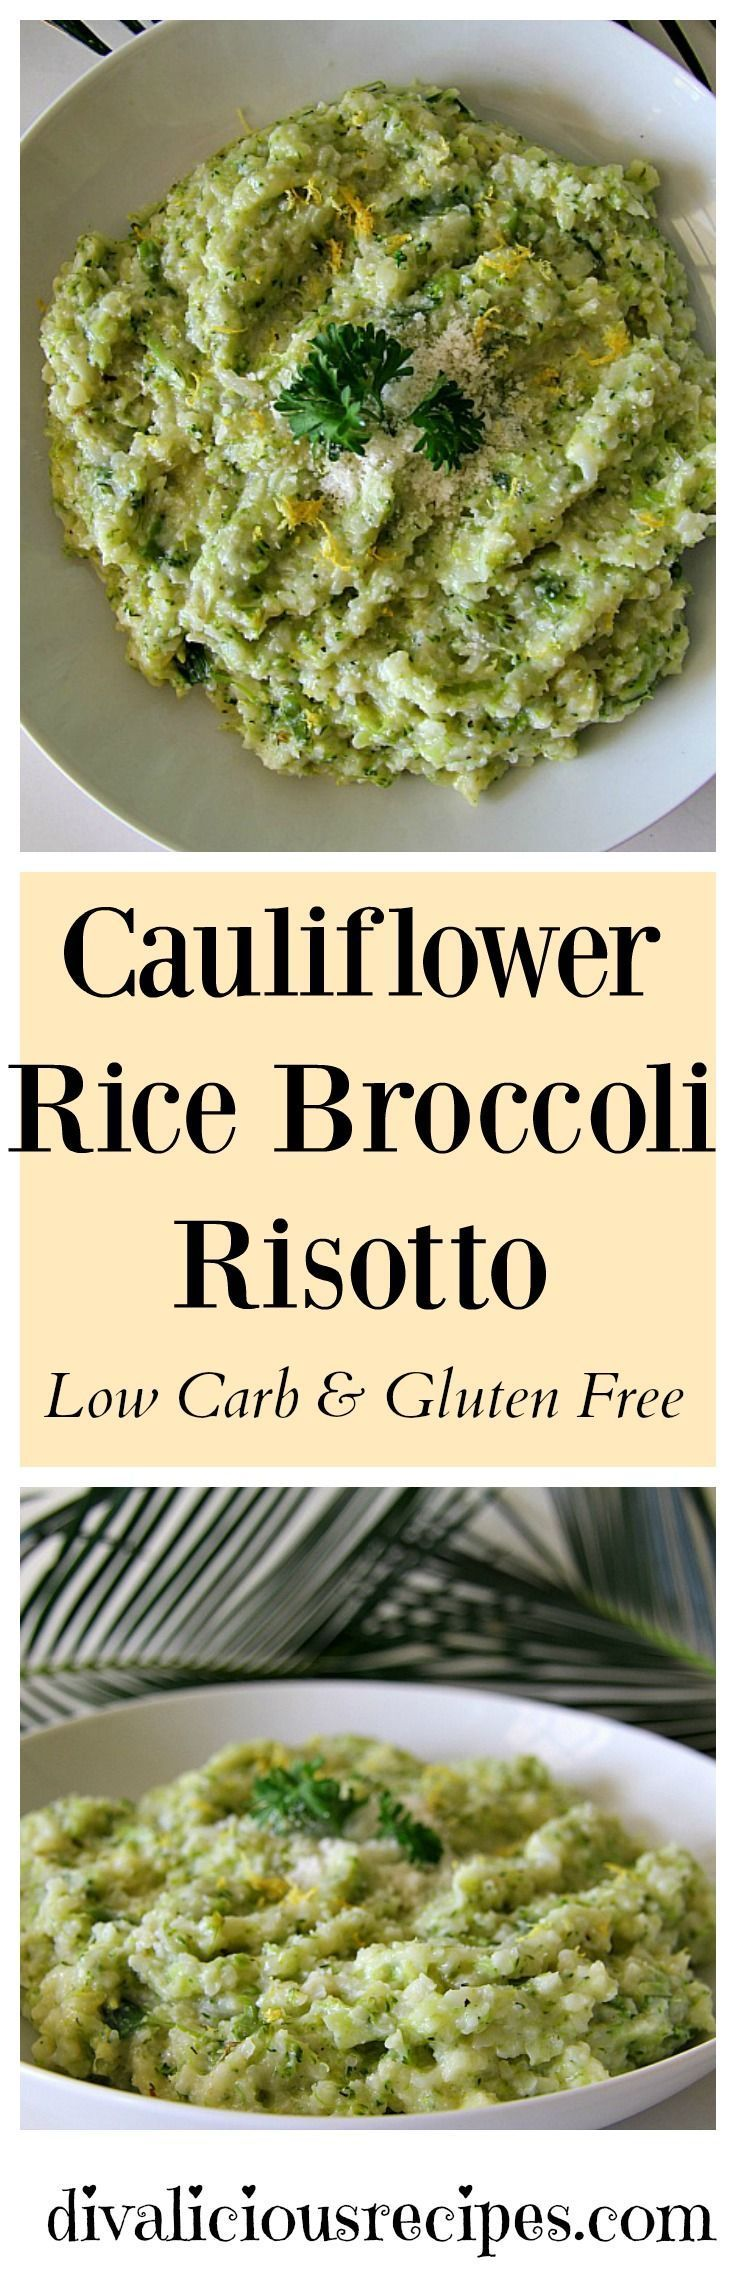 This cauliflower rice risotto is also made with broccoli rice. It's a tasty grain free dish that is quick to make too. Low carb and gluten free. Recipe: http://divaliciousrecipes.com/2017/02/08/cauliflower-rice-broccoli-risotto/